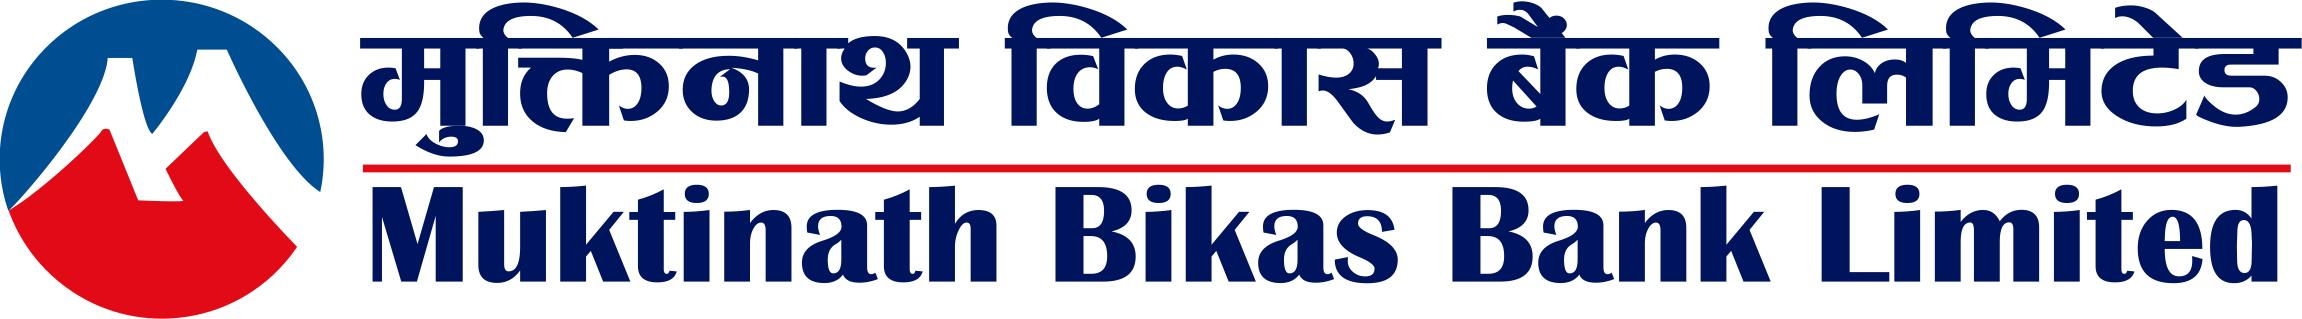 Muktinath Bikas Bank Earns Highest Profit among Devt Banks